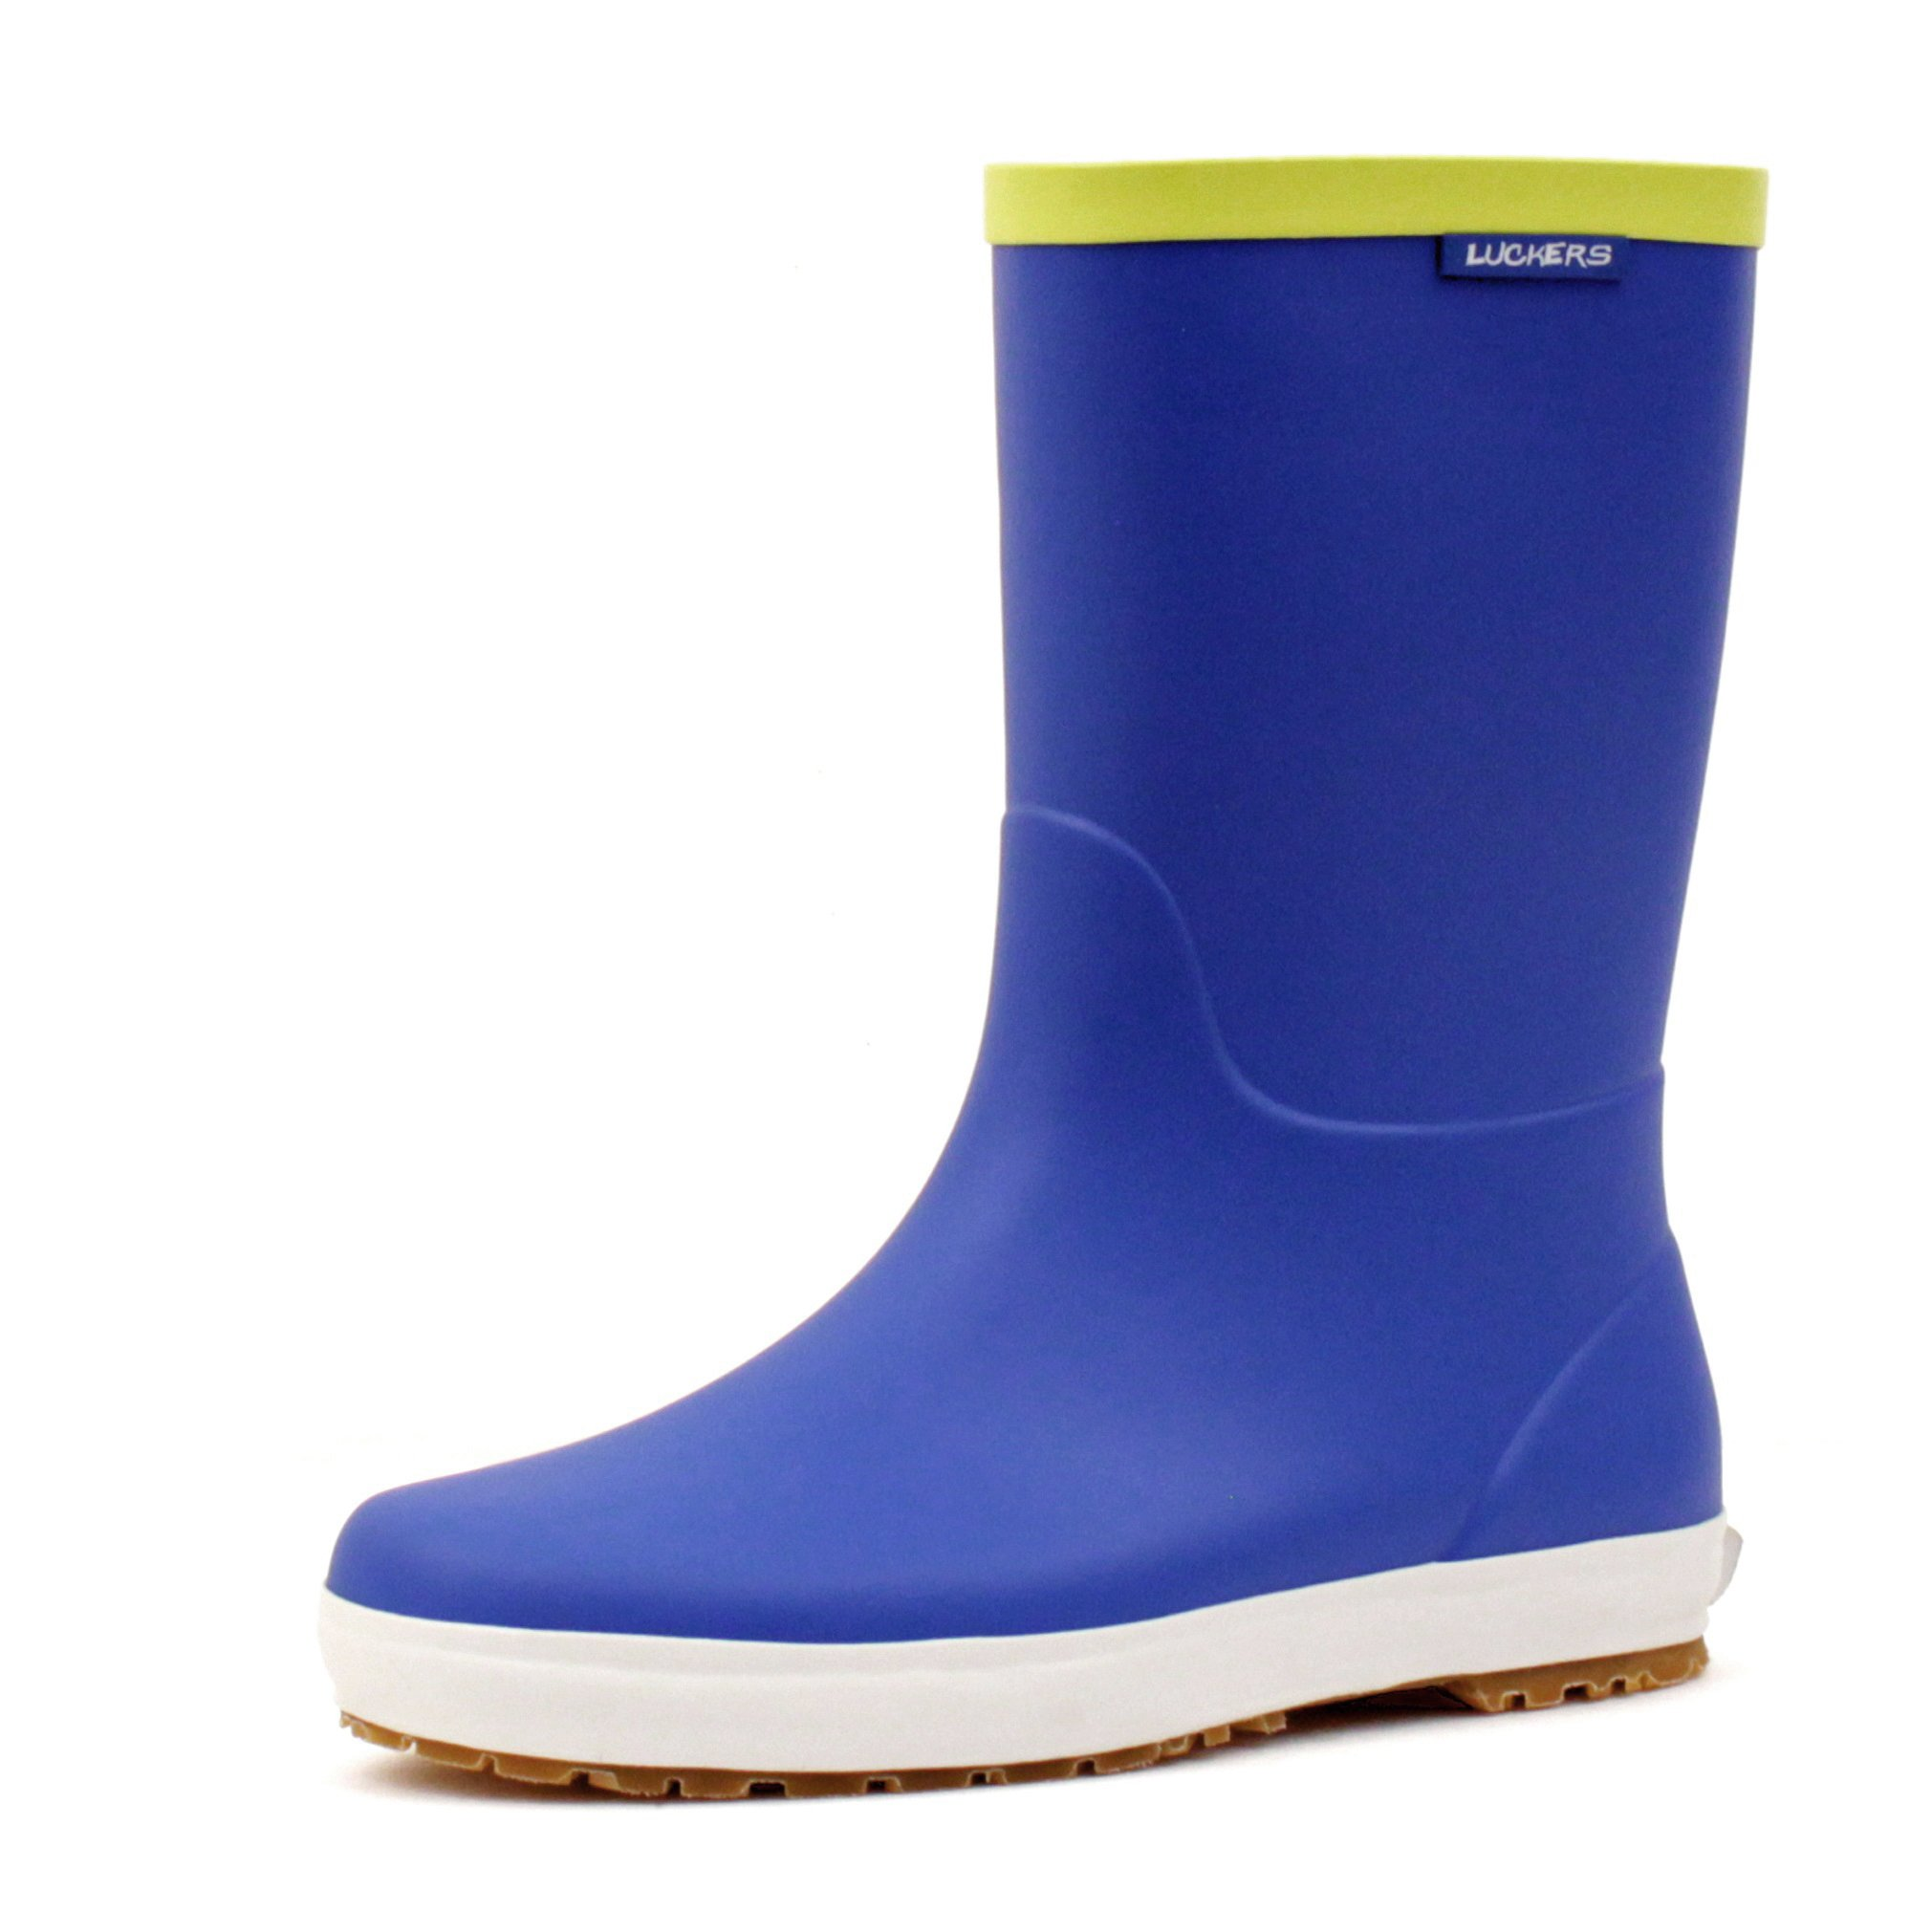 Luckers Girl's Trendy Foldable Wellies Rain Boots (Y3 M US Little Kid, Navy Blue)